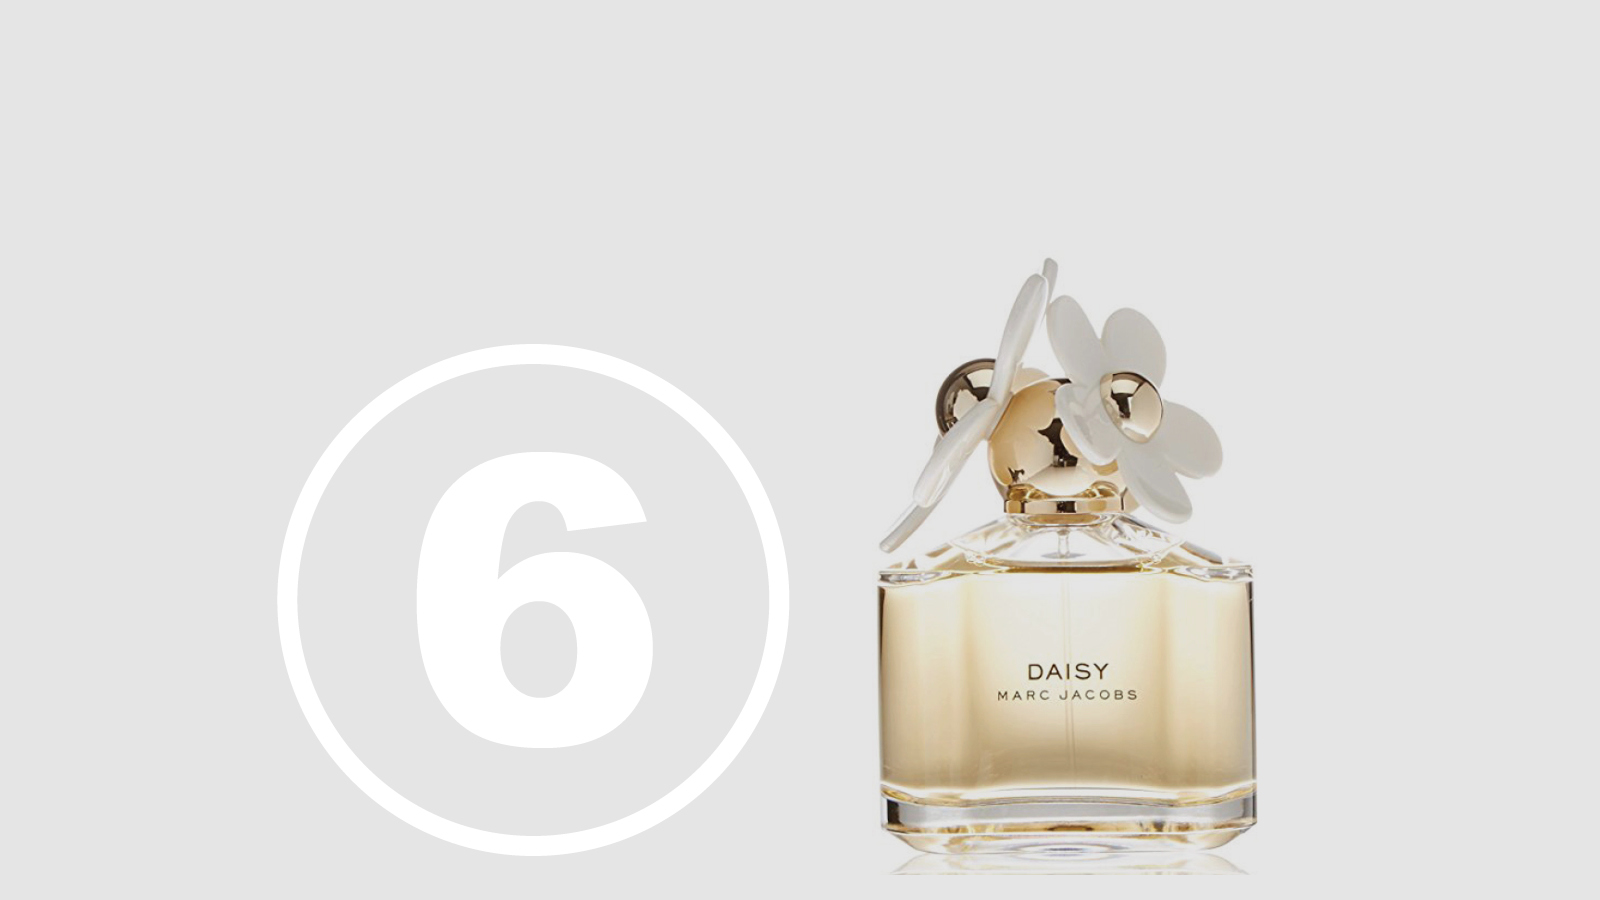 "<h5>Top Ten Most Hazardous Products</h5><h4>Marc Jacobs Daisy Perfume</h4><p>Another Coty fragrance that carries the famous designer's name and uses beatific, radiant young girls in its marketing campaigns.<br />We found <span class=""highlight"">14 chemicals</span> chemicals linked to chronic health effects with <span class=""highlight"">100% hidden in ""fragrance.""</span></p>"